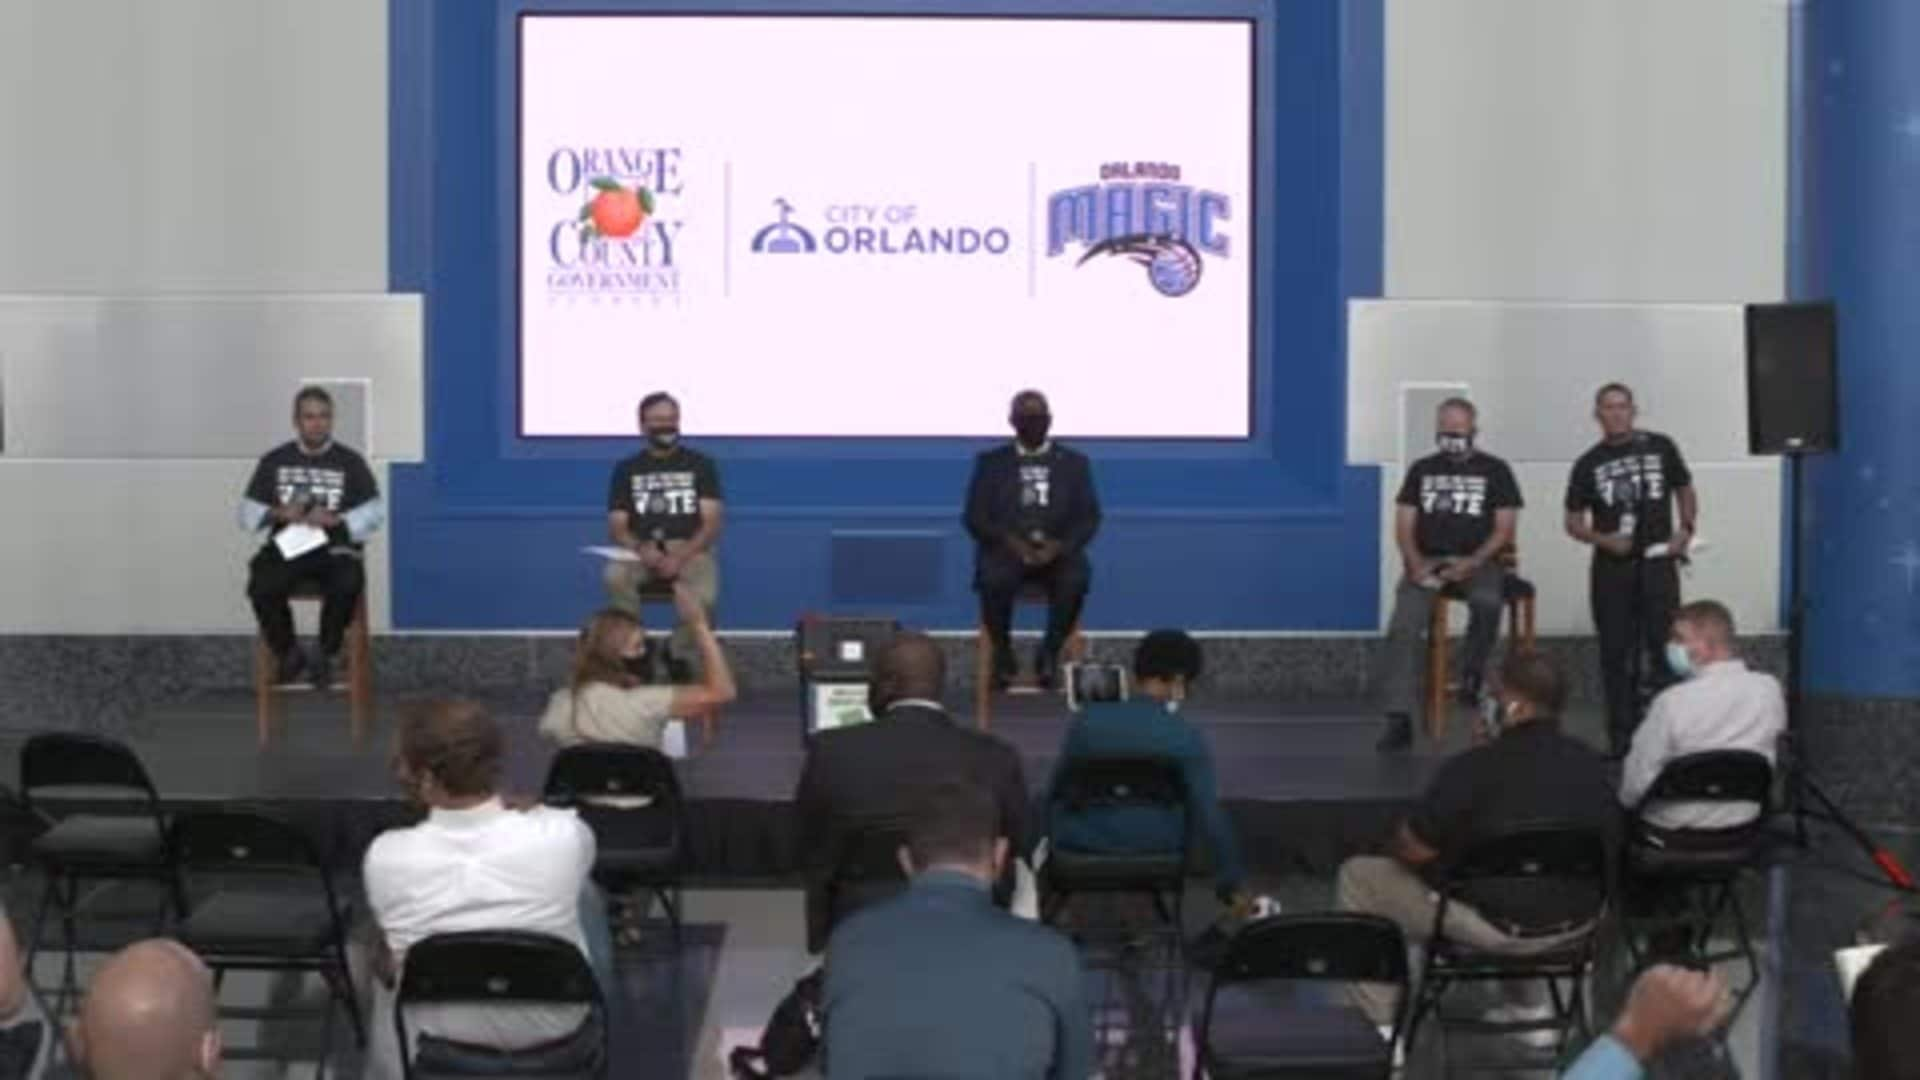 Press Conference: Magic Join City of Orlando to Open Amway Center as Early Voting Location